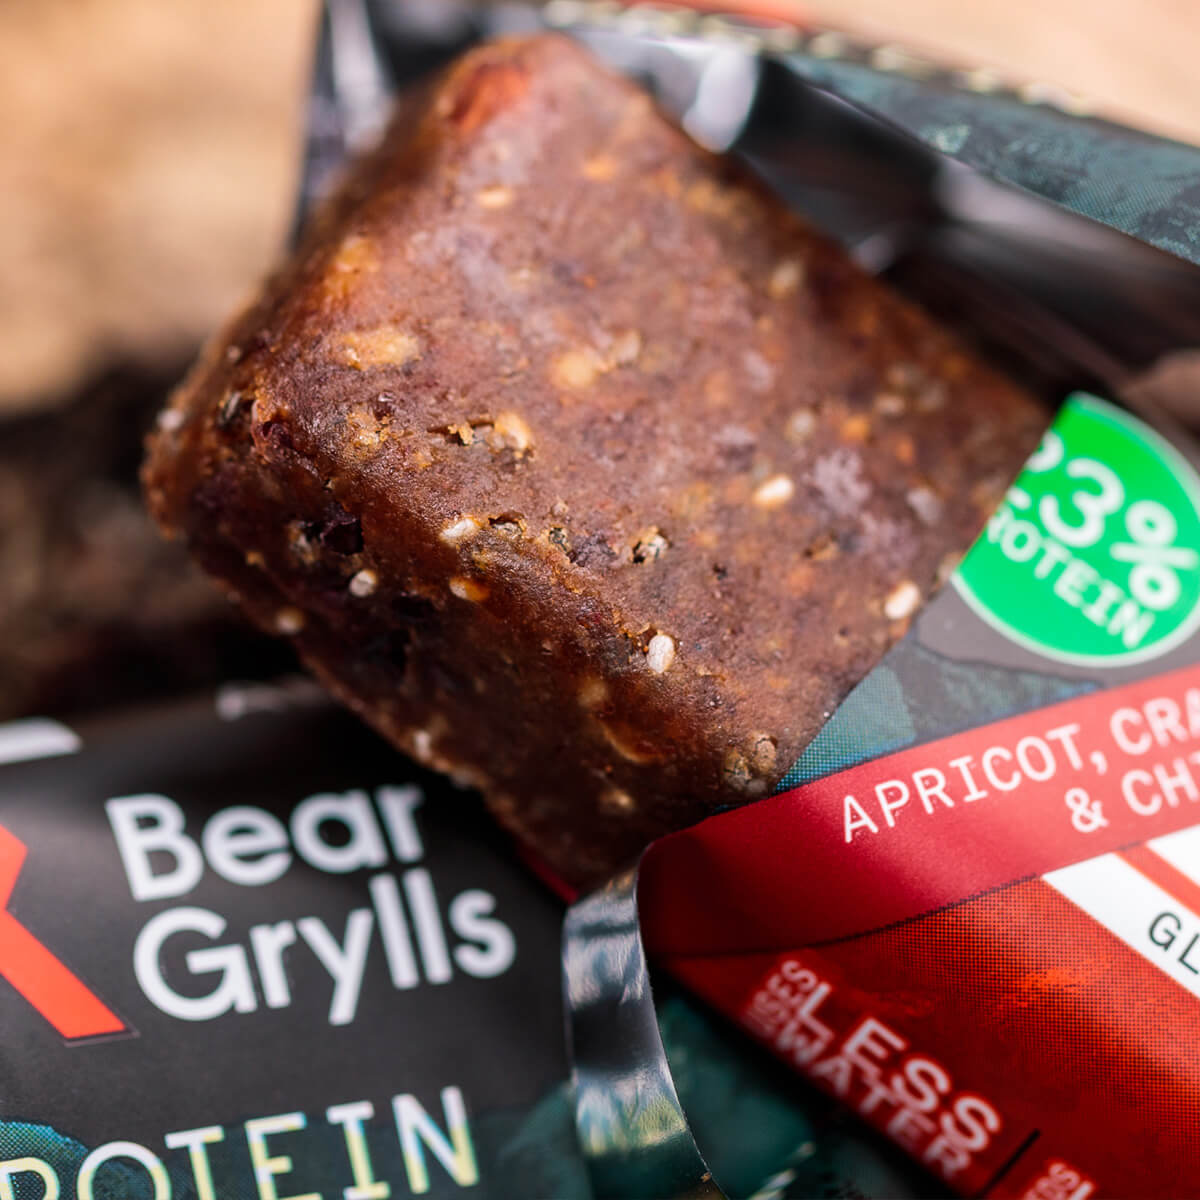 Planet positive Bear-Grylls-apricot-cranberry-chia-protein-bar